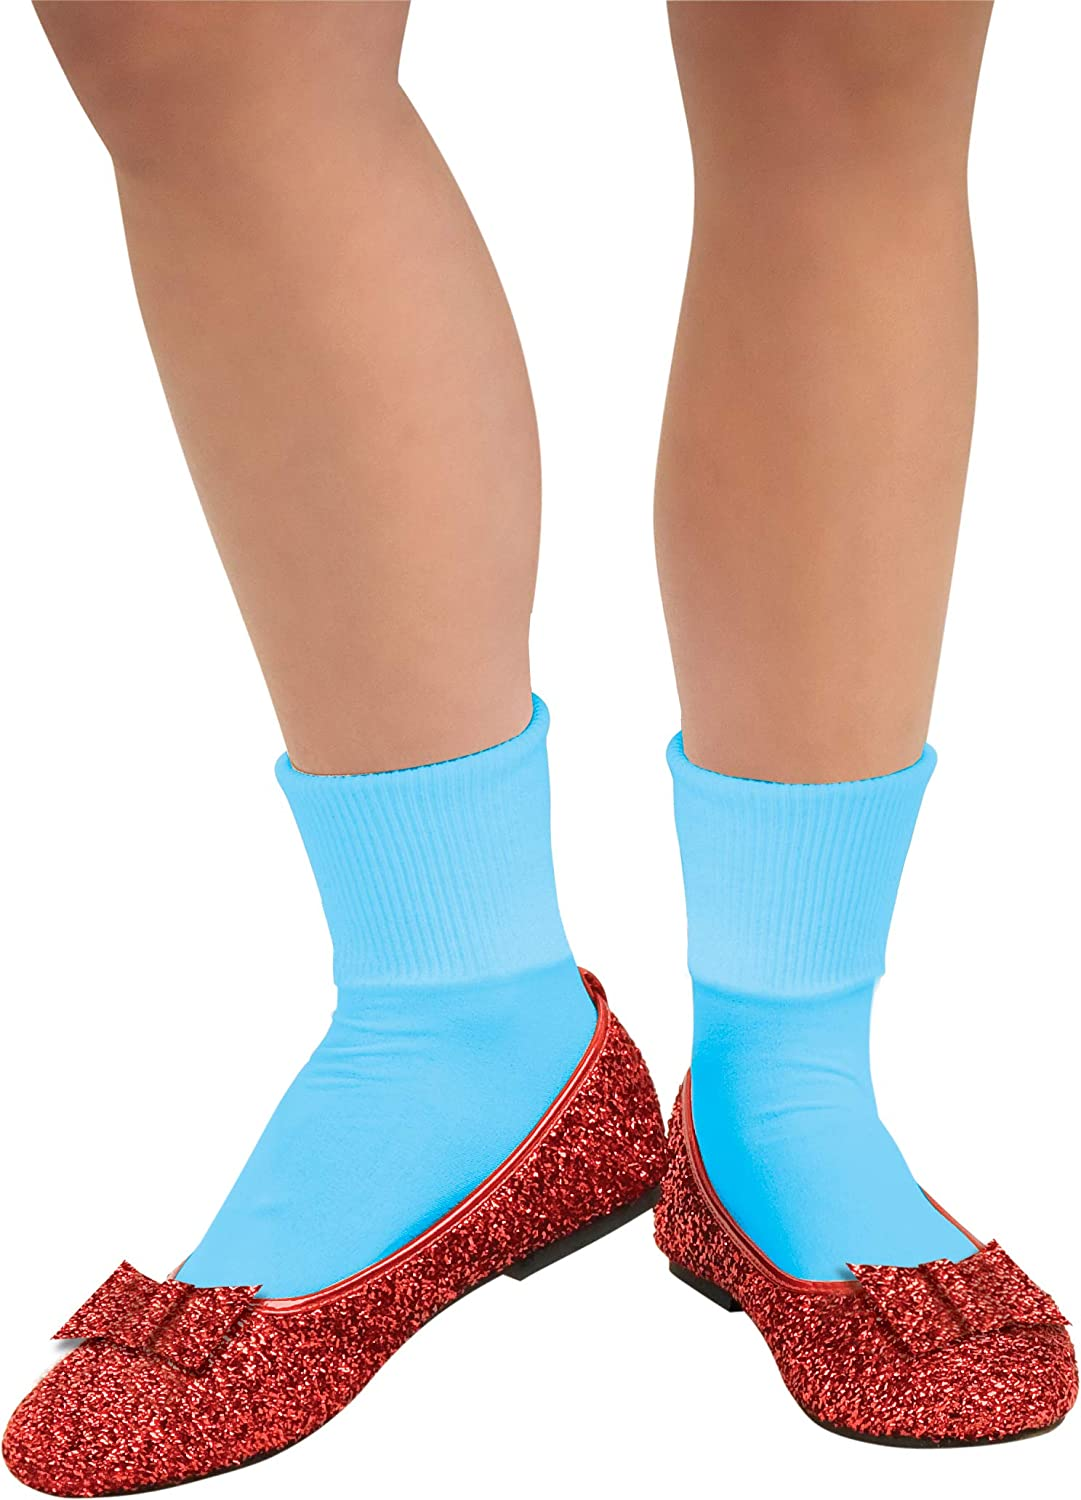 Rubie's Costume Wizard Of Oz Deluxe Adult Dorothy Sequin Shoes Rubies Costumes - Apparel 6465M-P